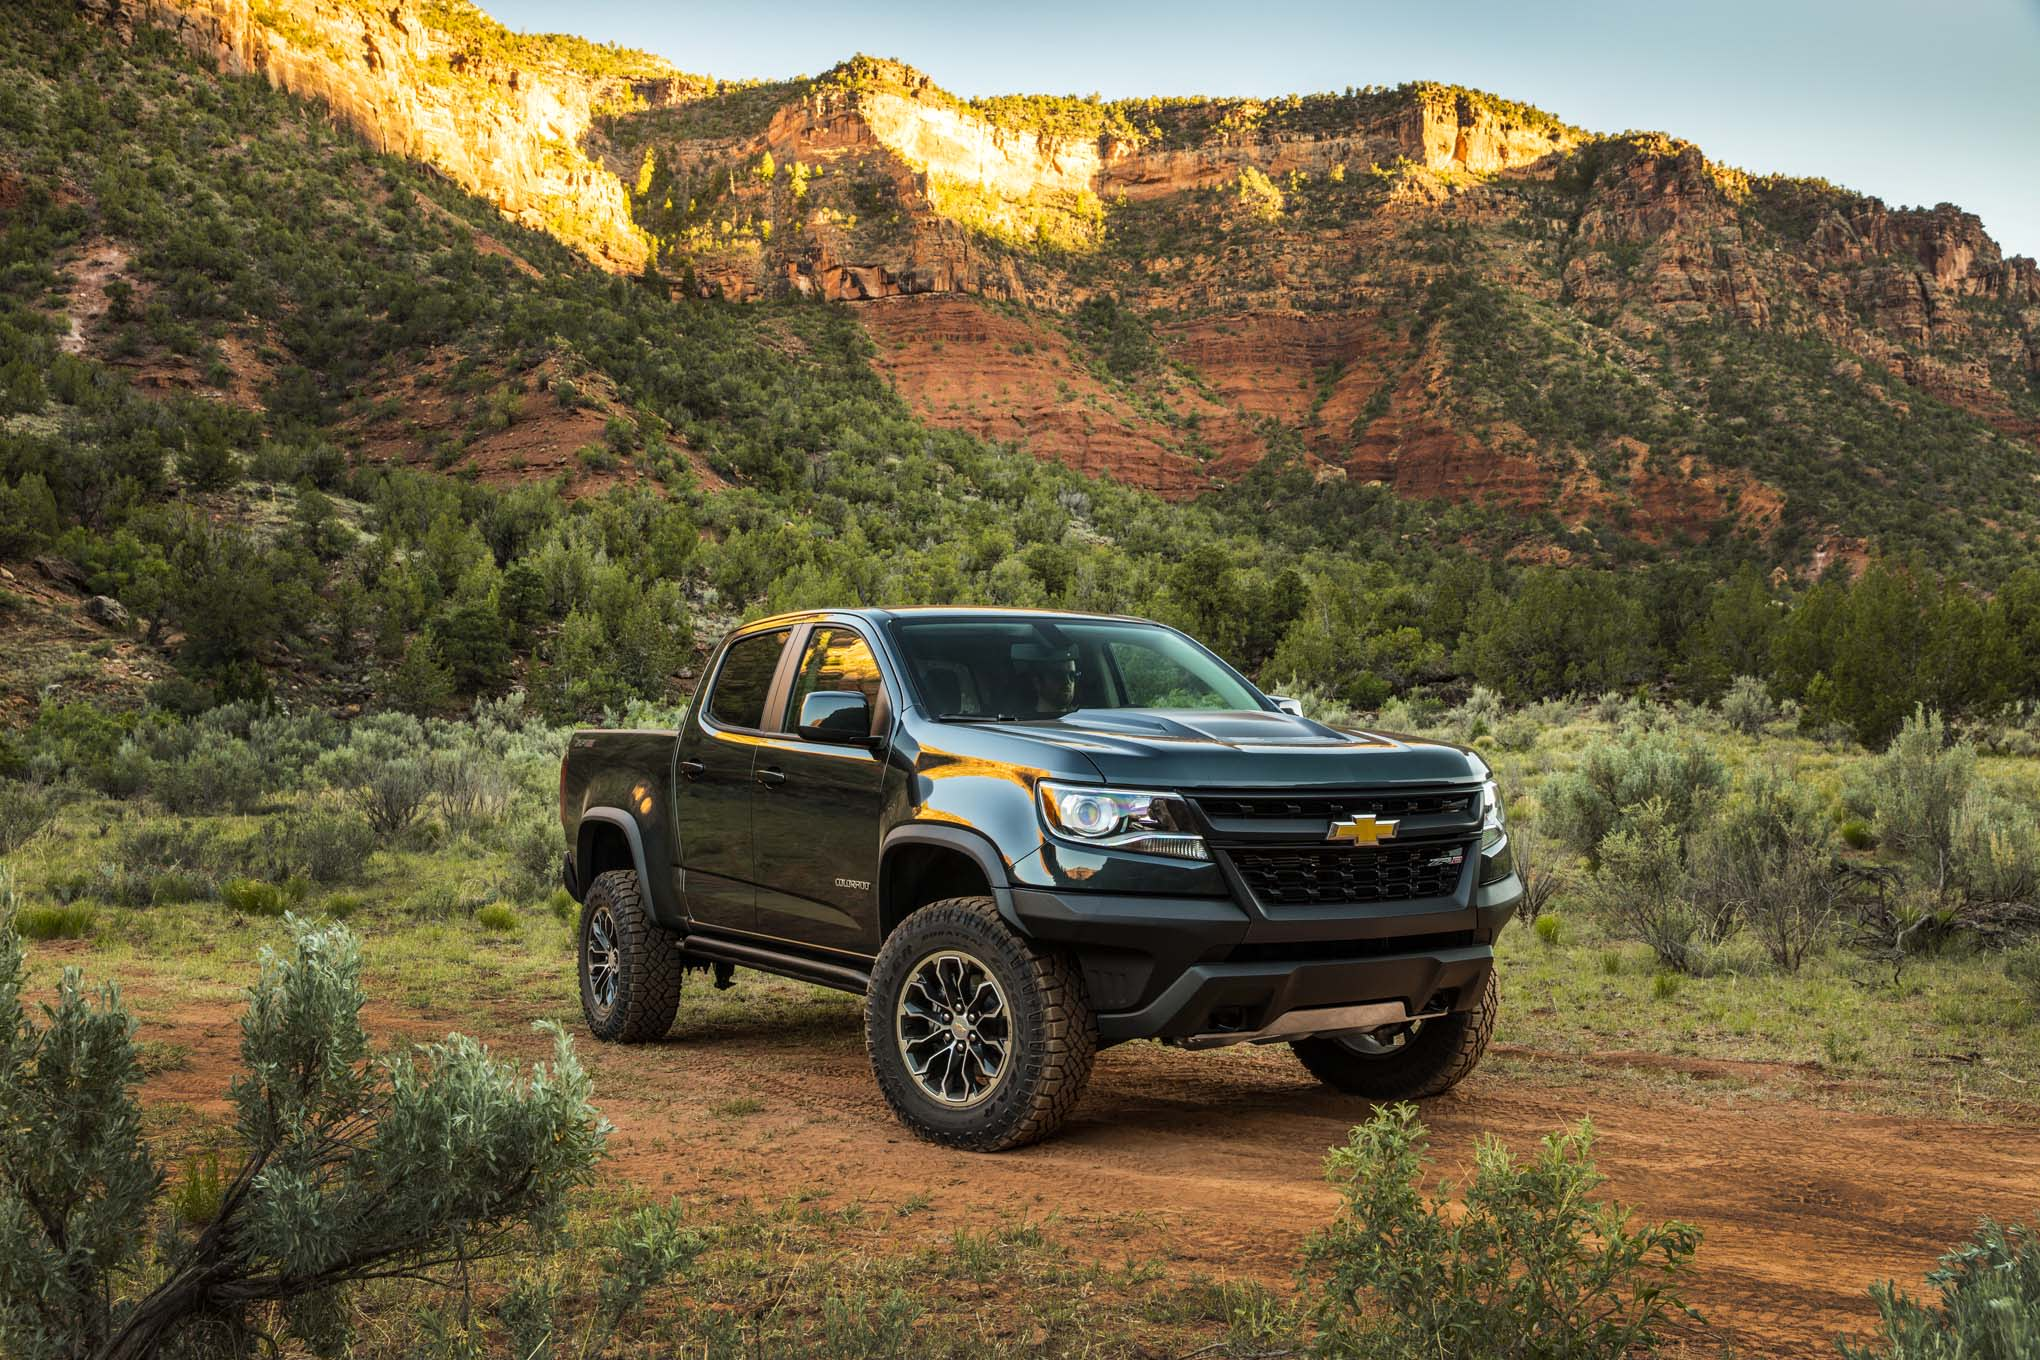 2017 Chevrolet Colorado ZR2 mid-size pick-up review [Video]